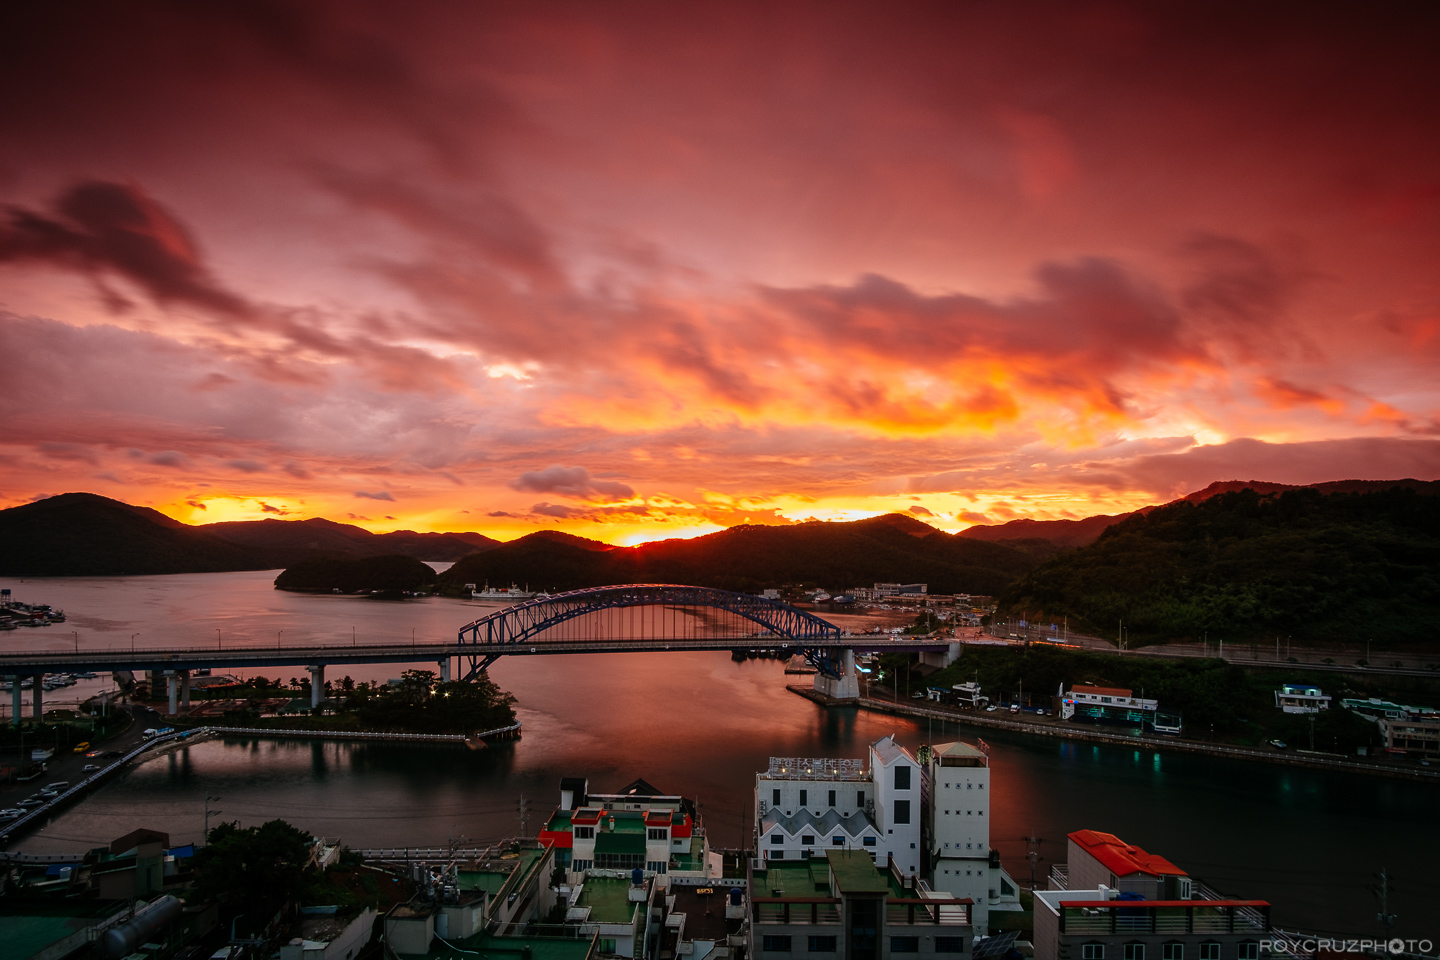 tongyeong-bridge-skyfire-1